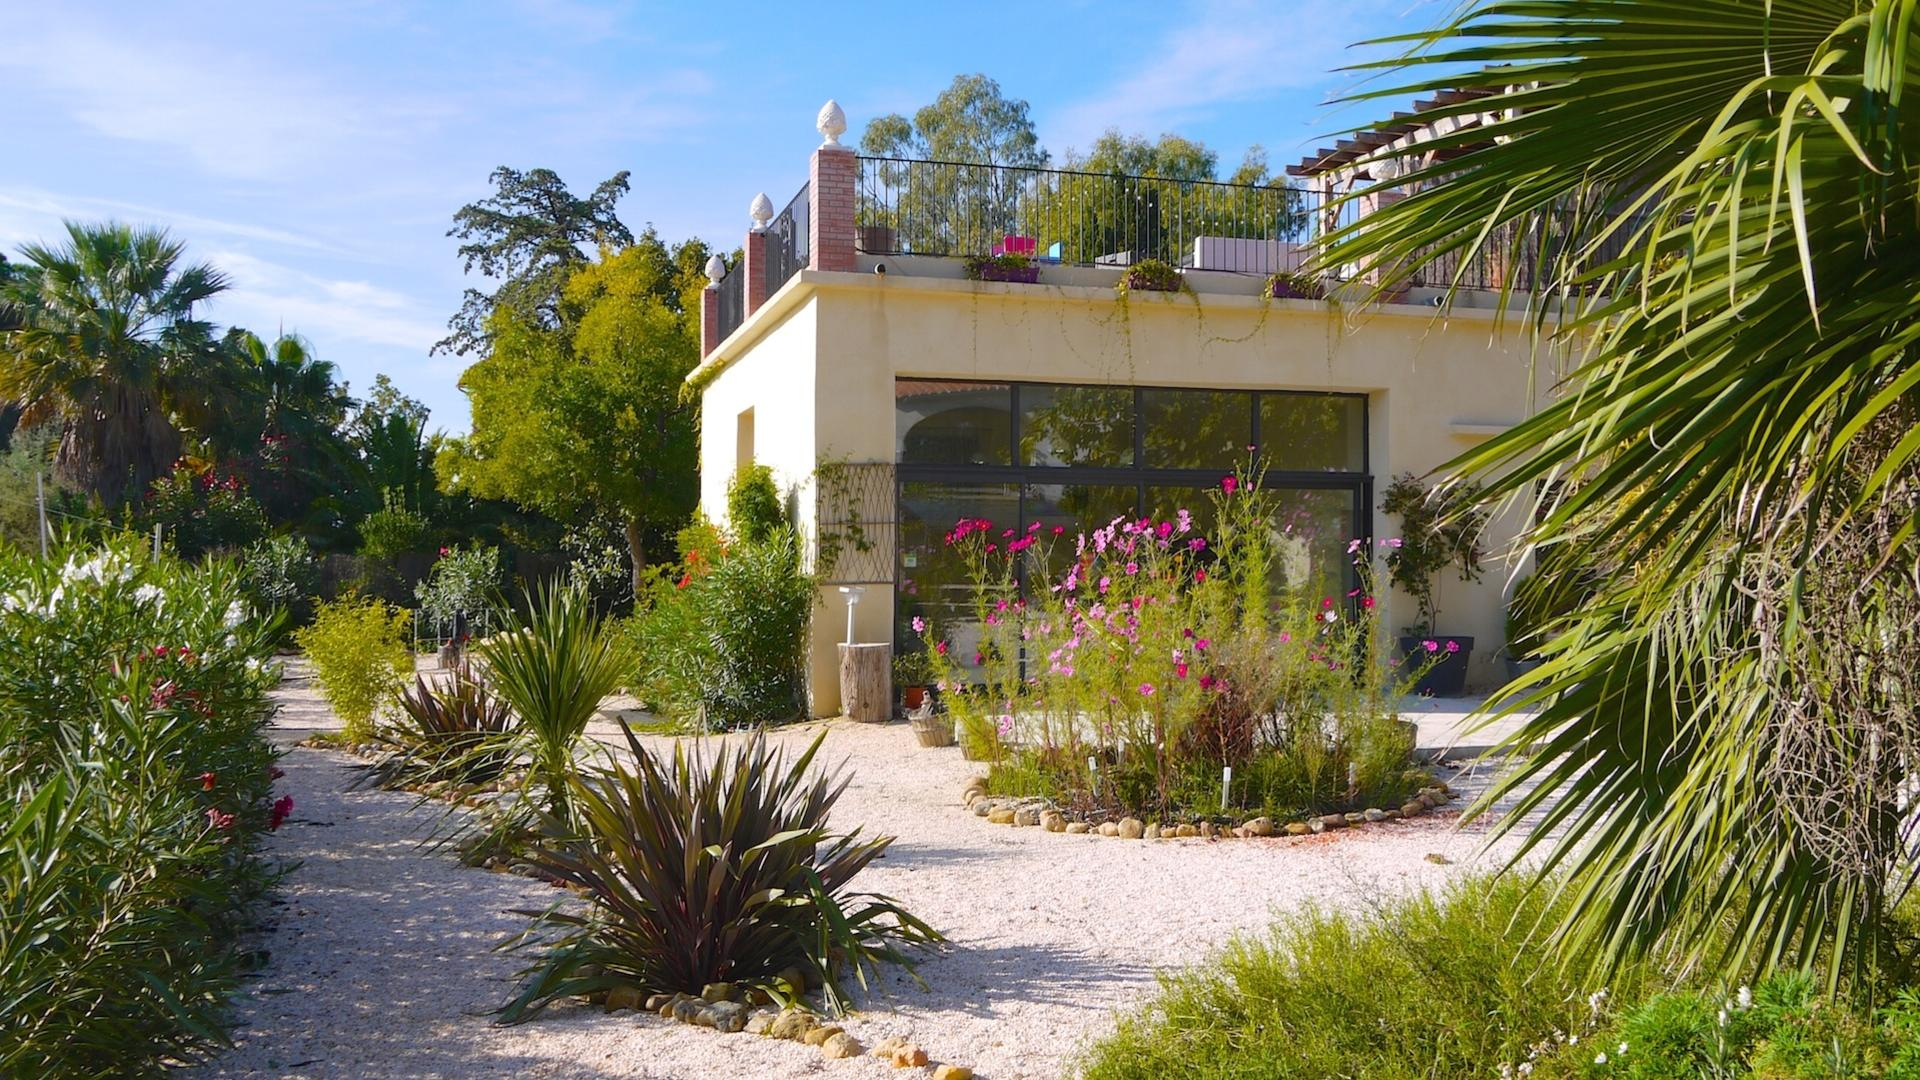 2 Bedroom Luxury micro resort in Languedoc-Roussillon, France